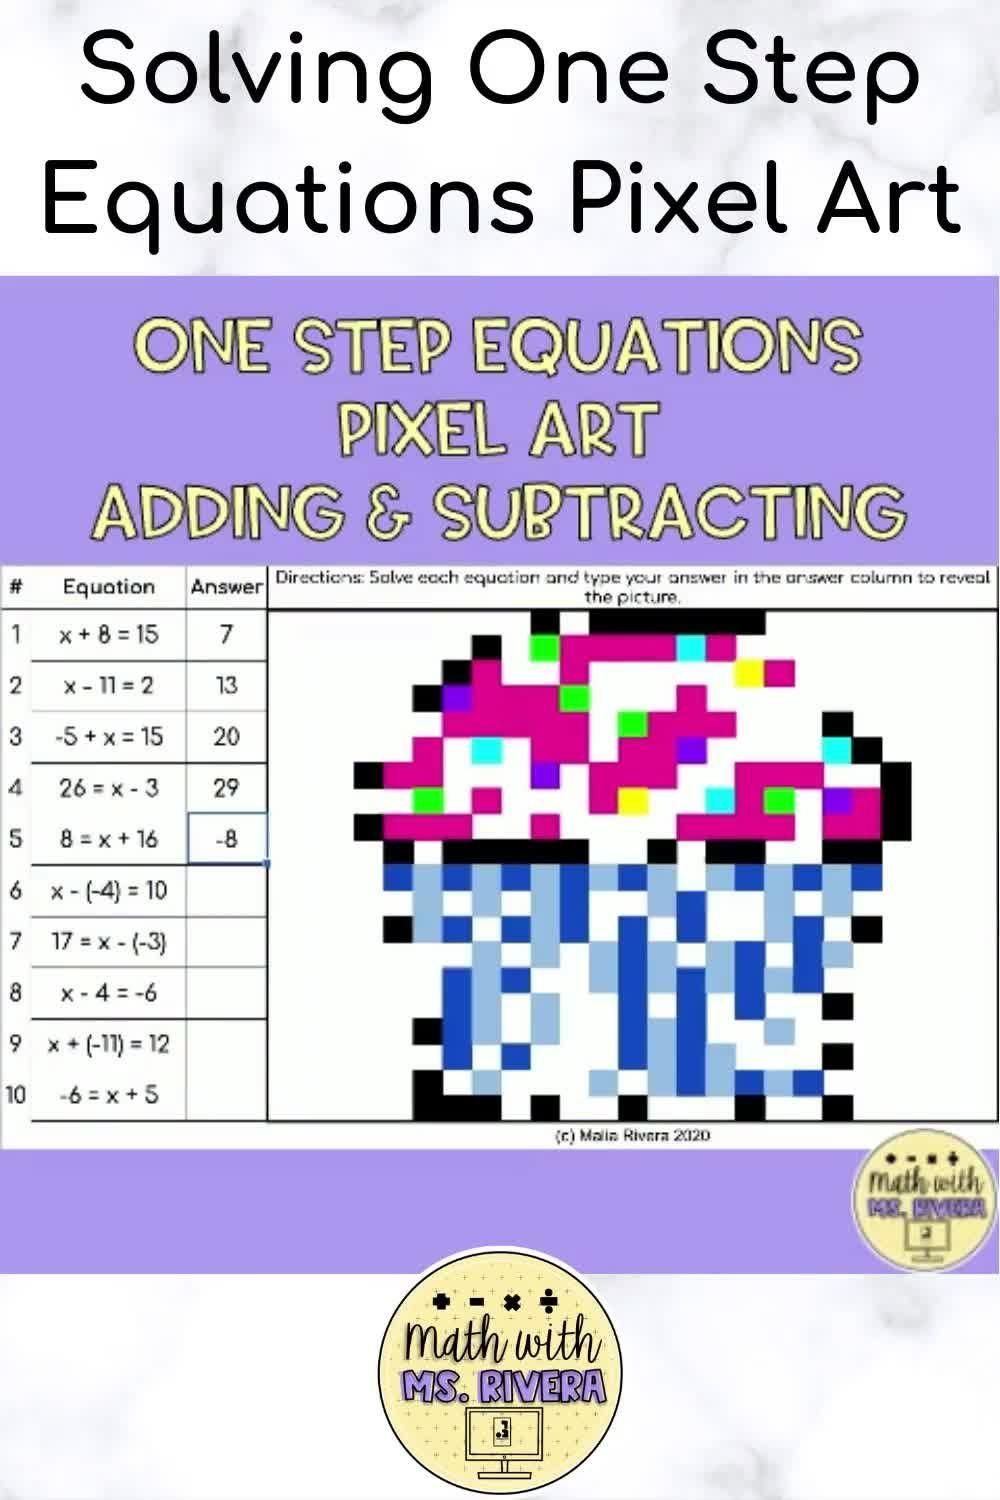 Solving One Step Equations With Addition Subtraction Digital Mystery Pixel Art Video In 2021 Solving Equations Activity One Step Equations Middle School Math Resources Solving one step equations by adding